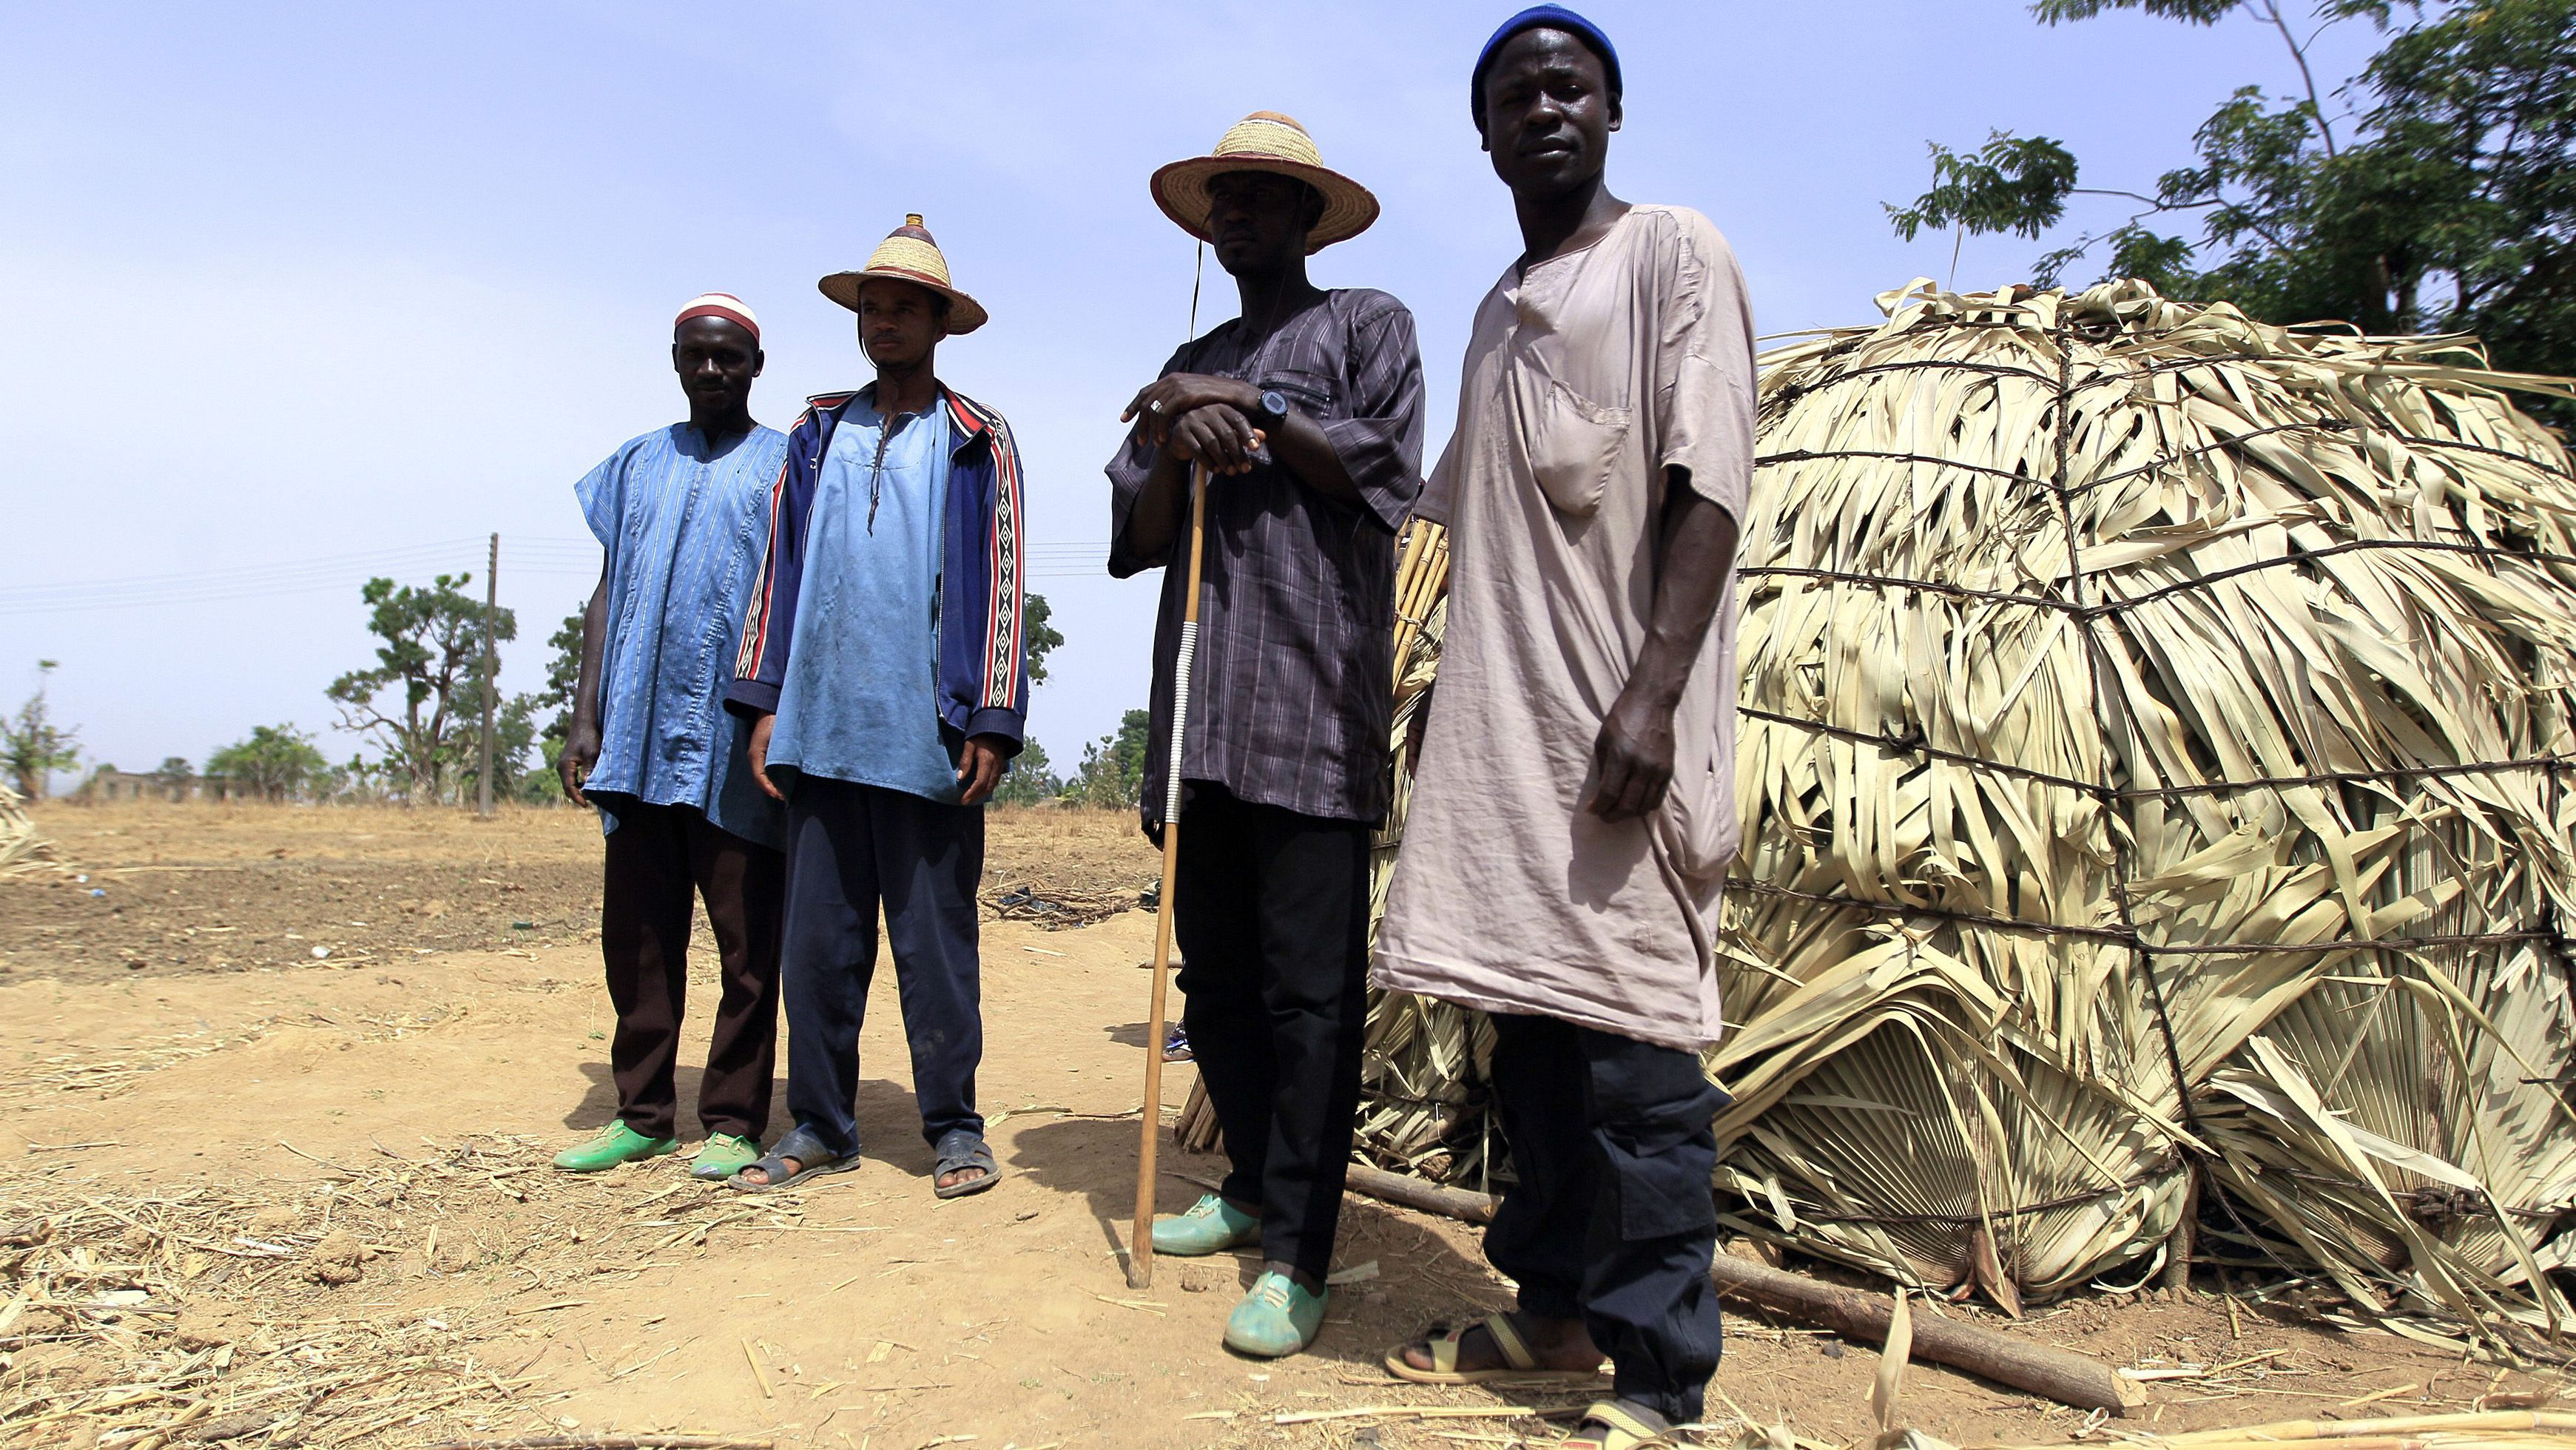 Fulani herdsman Musa Adamu (R) poses for a picture with other Fulani herdsman in Zango, Zango-kataf local govt, Kaduna State March 22, 2014. Picture taken March 22, 2014. To match Insight NIGERIA-UNITY/  REUTERS/Afolabi Sotunde (NIGERIA - Tags: CIVIL UNREST SOCIETY) - RTR3MV9Q